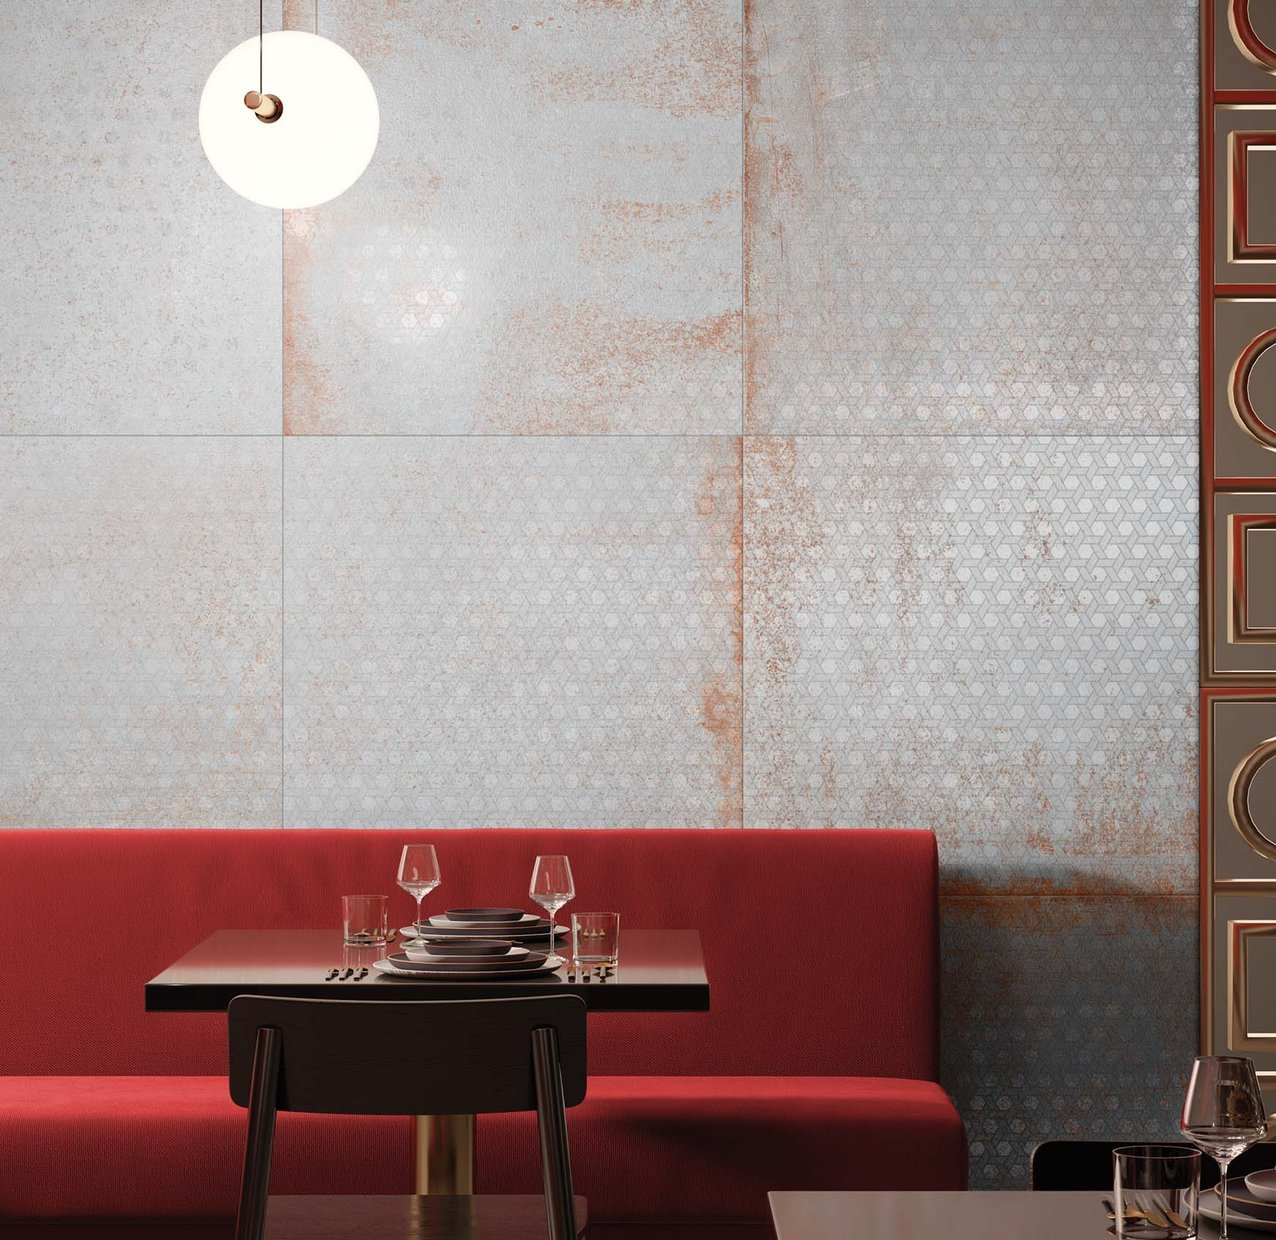 Evoque metal Grey and White tiles Modern style Light Commercial